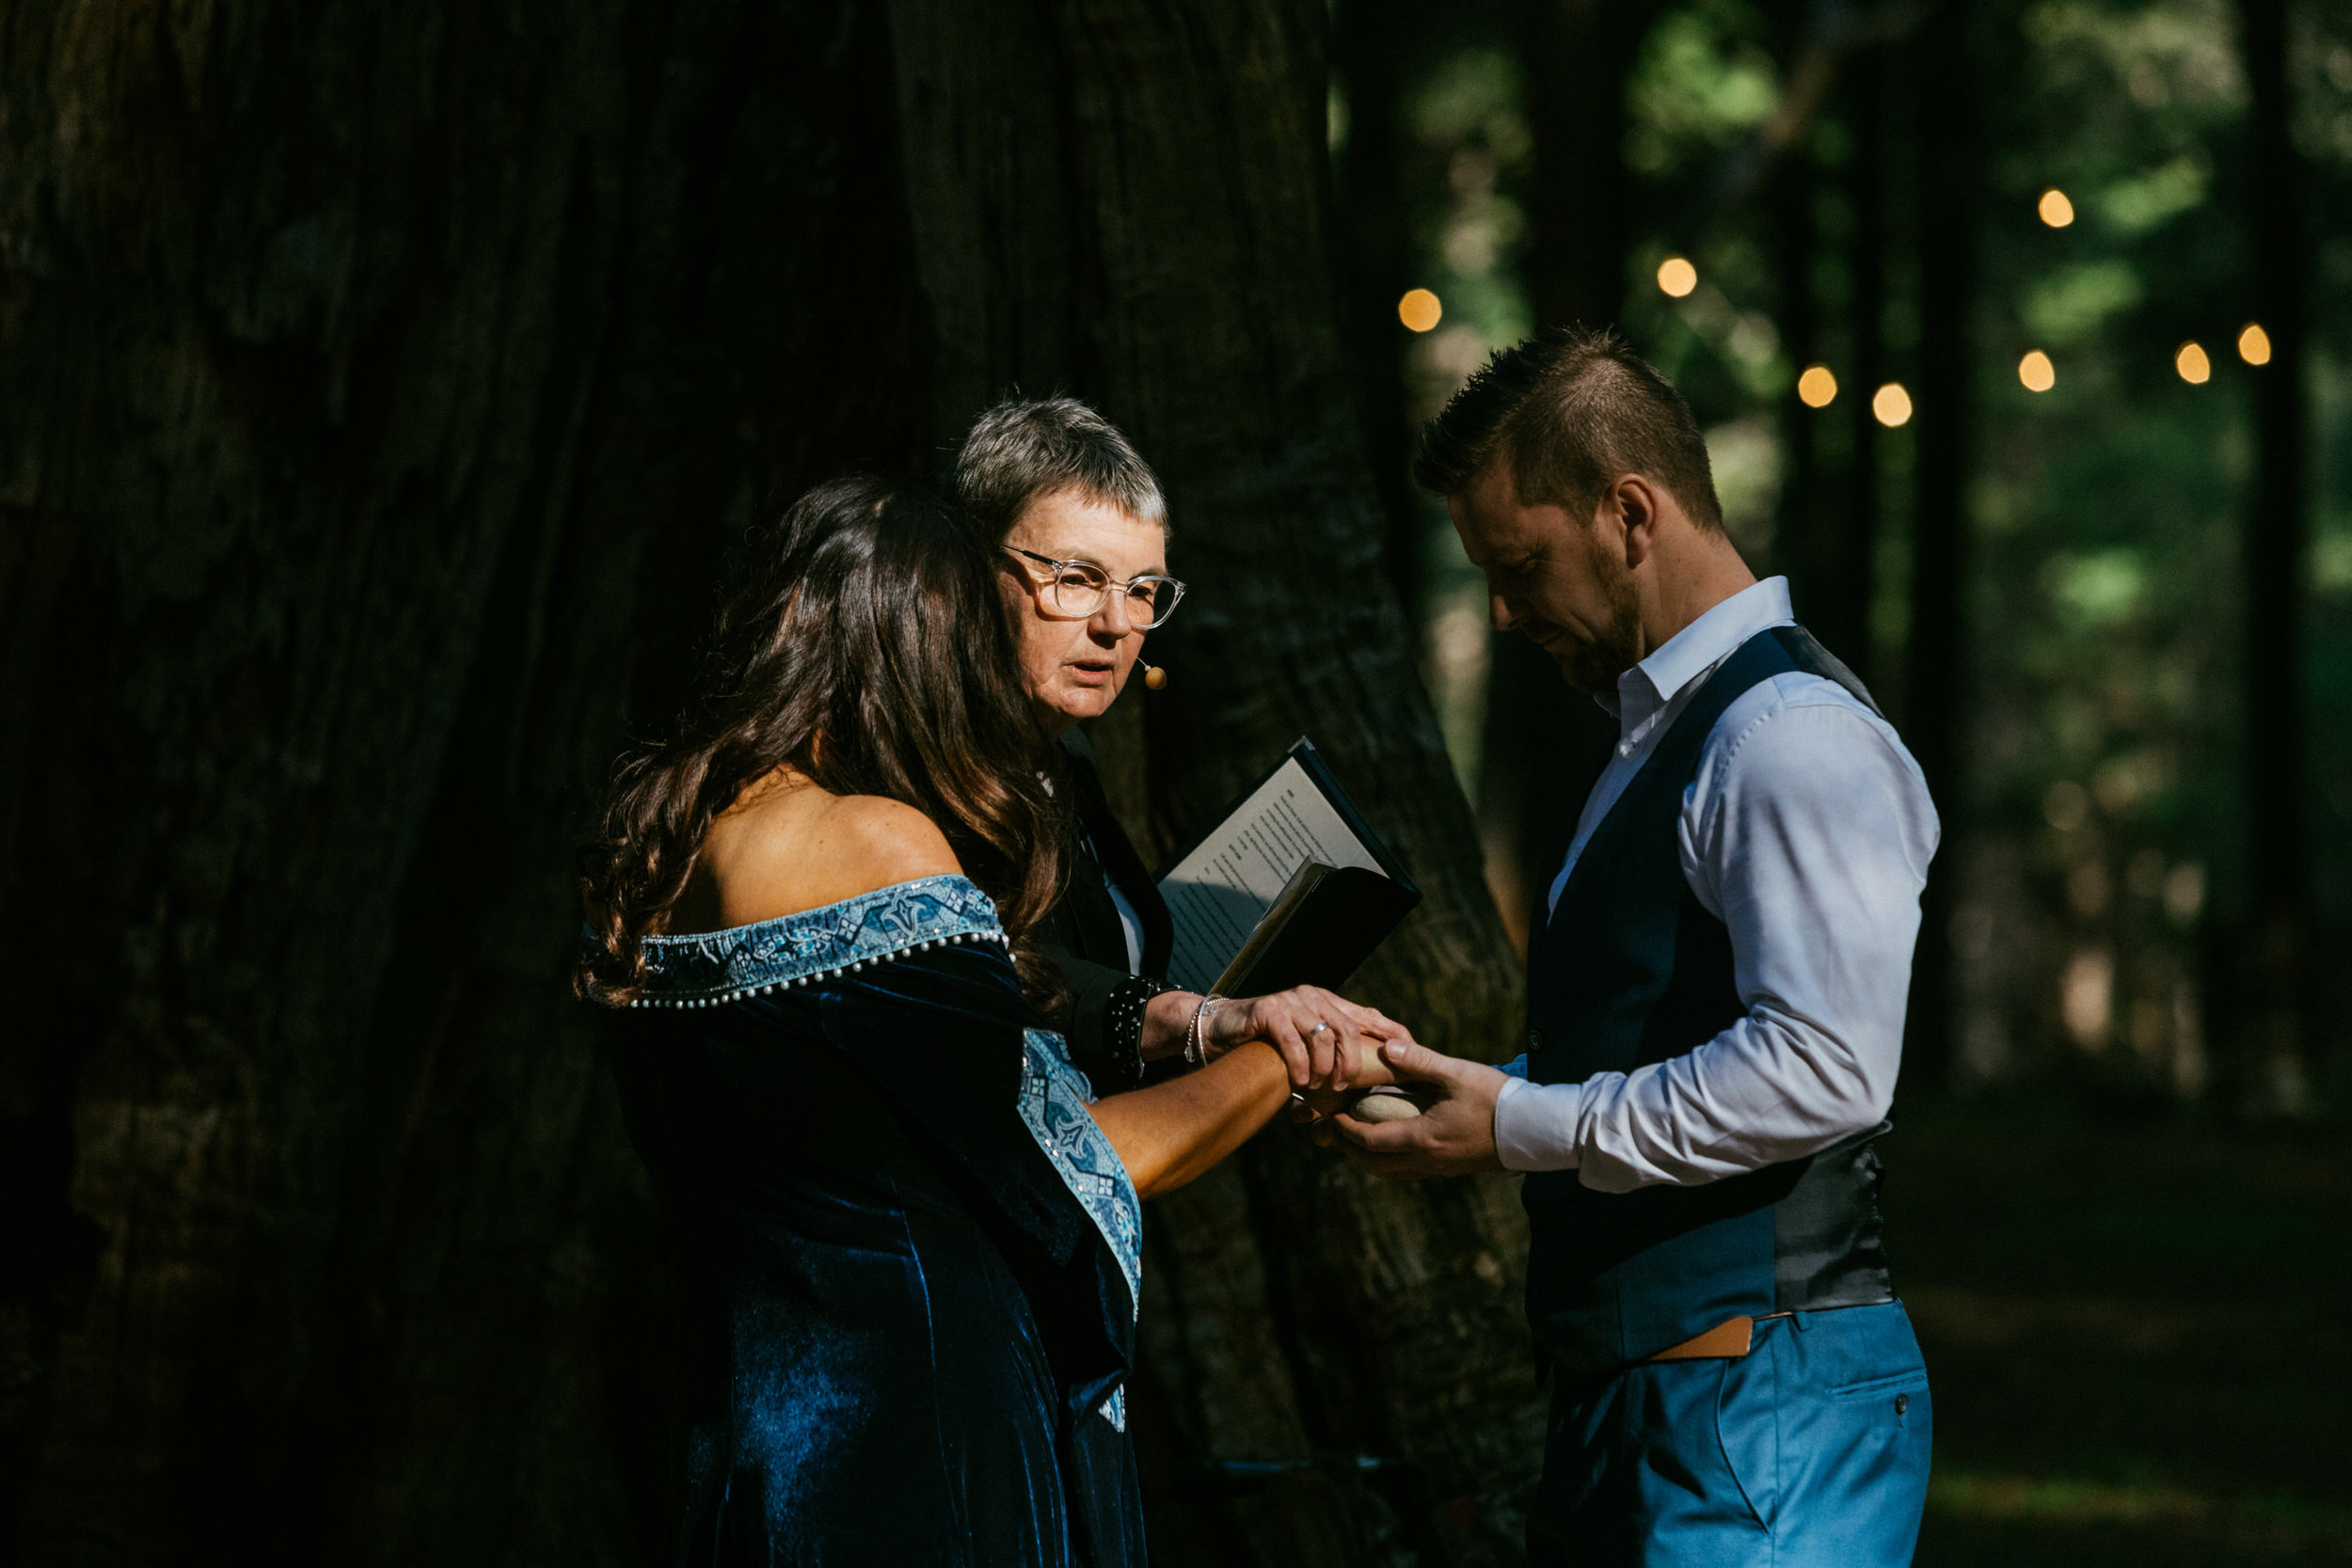 Bohemian Forest Wedding Adelaide Kuitpo 030.jpg